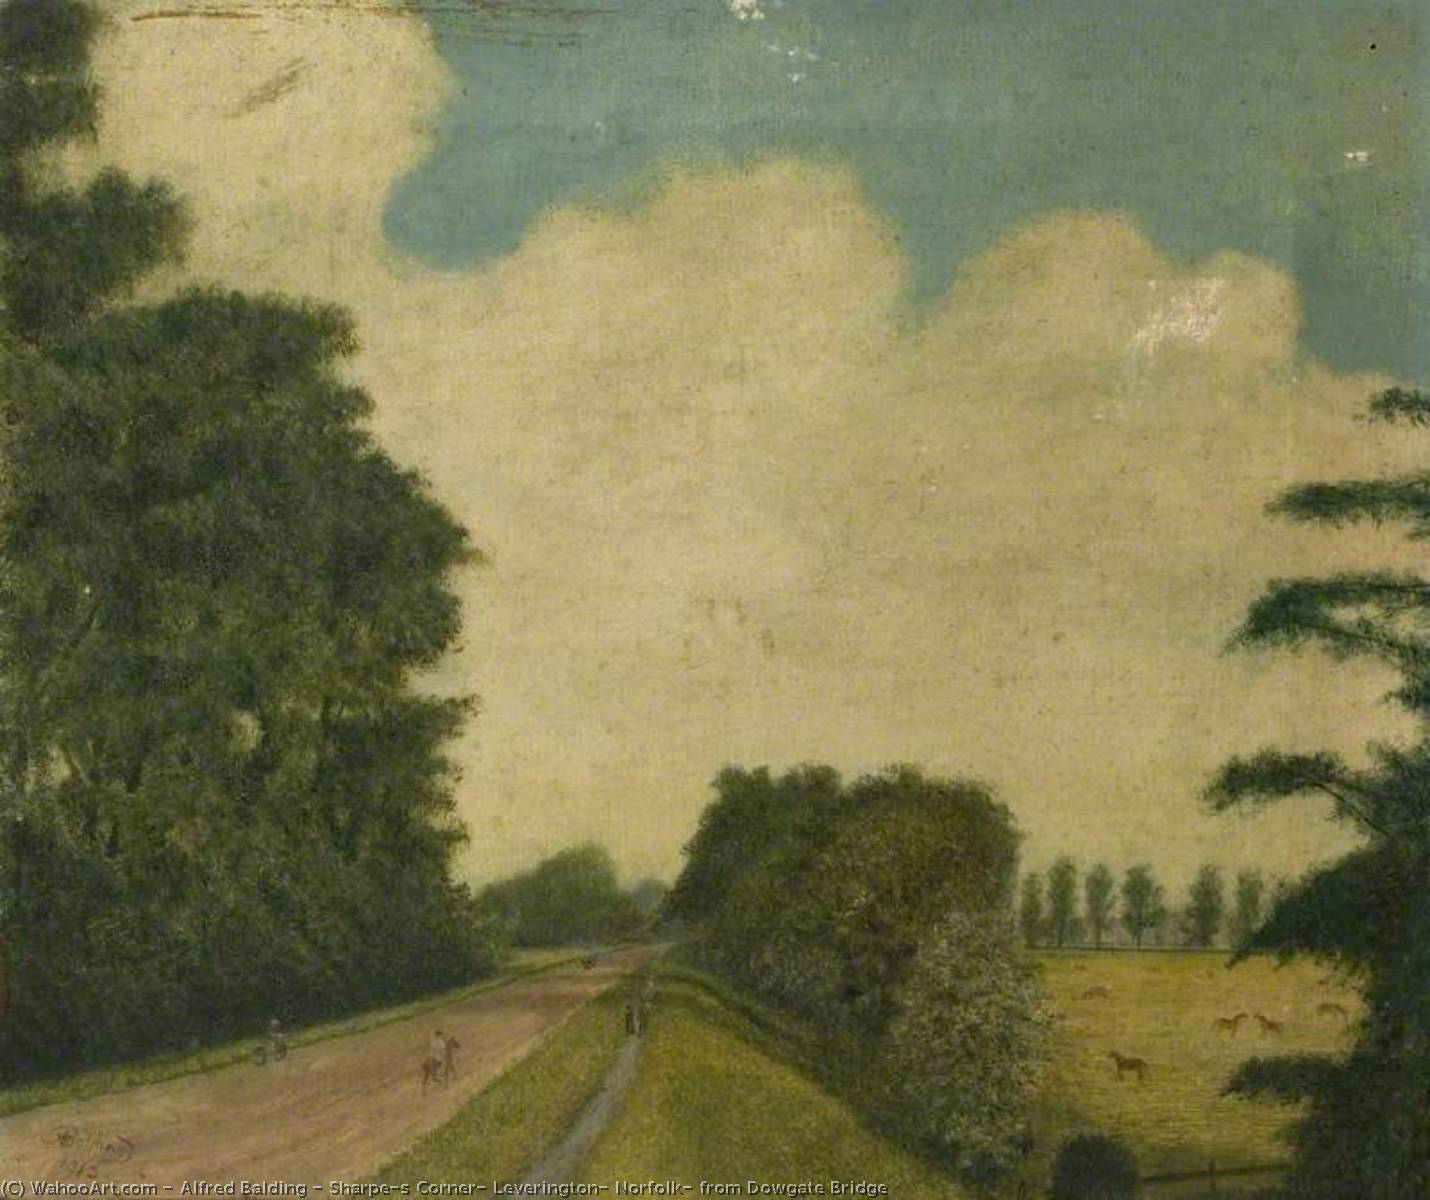 Sharpe`s Corner, Leverington, Norfolk, from Dowgate Bridge, 1912 by Alfred Balding | Museum Quality Reproductions | WahooArt.com